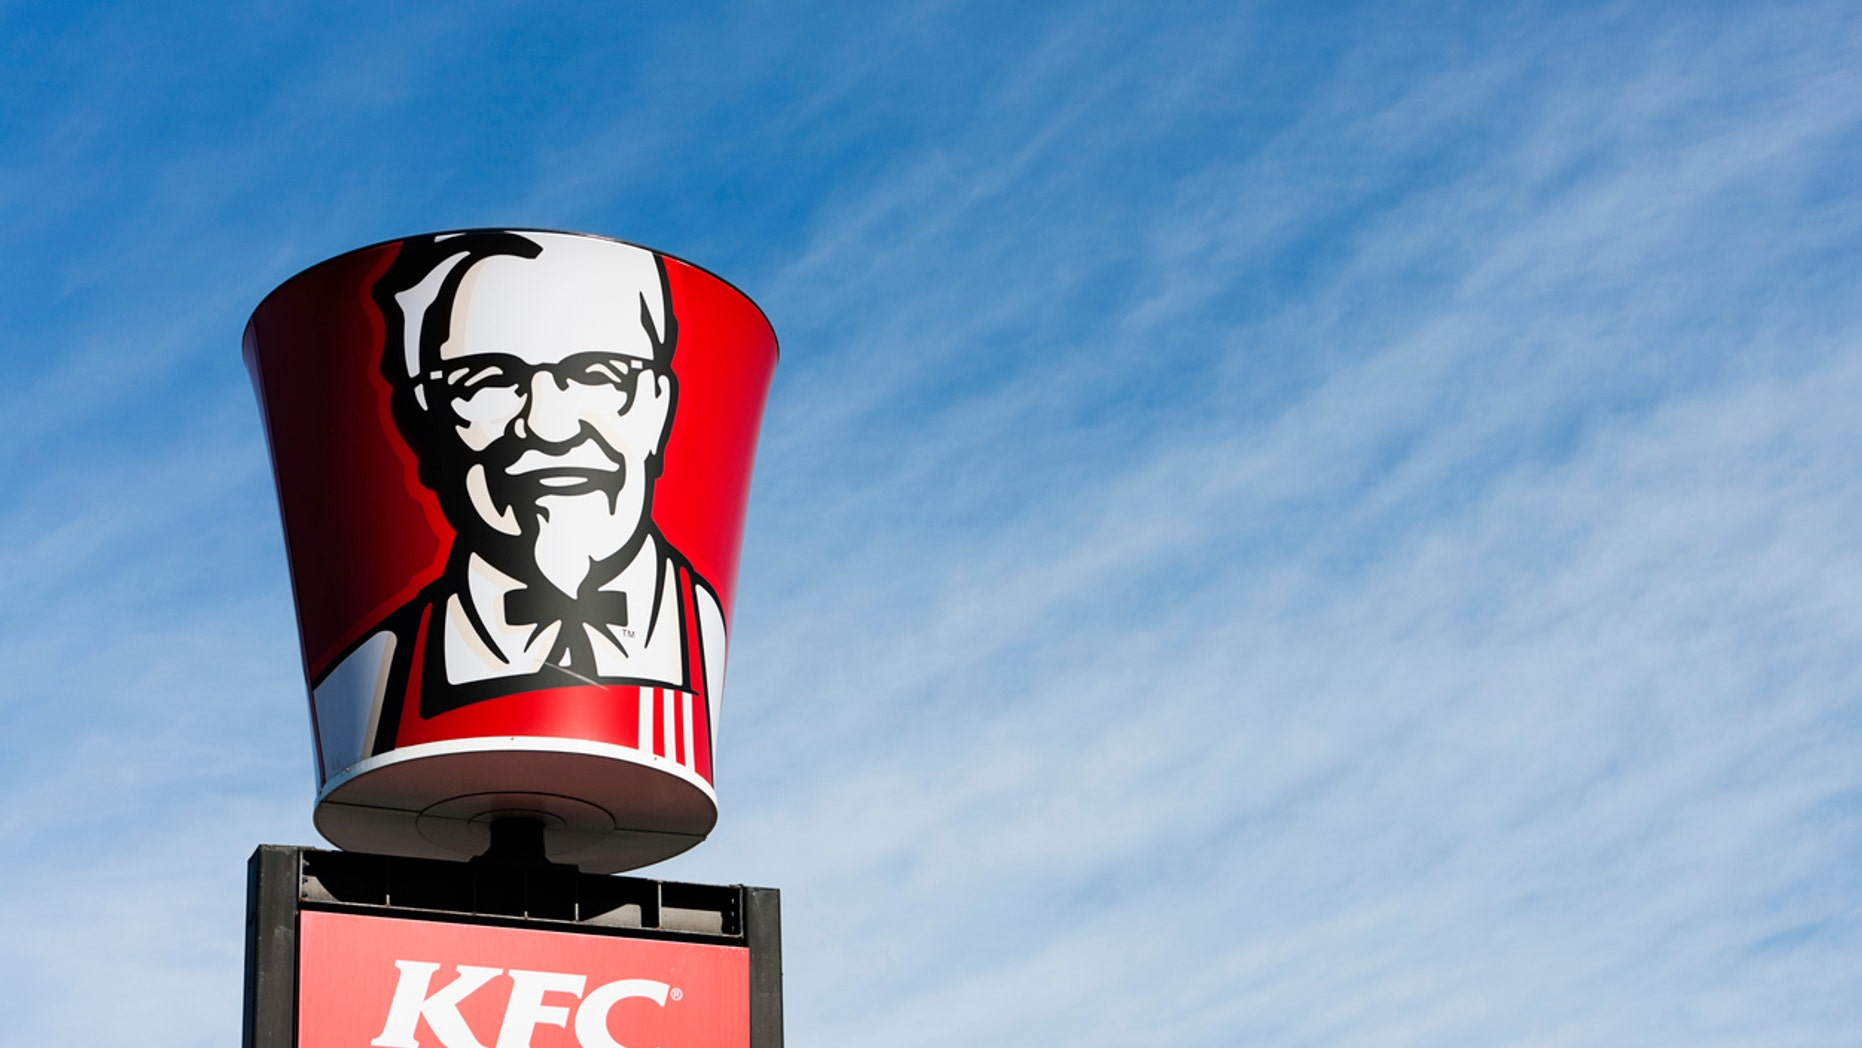 KFC opened the world's tiniest restaurant for one day to give fans free miniature Fill Up Boxes.